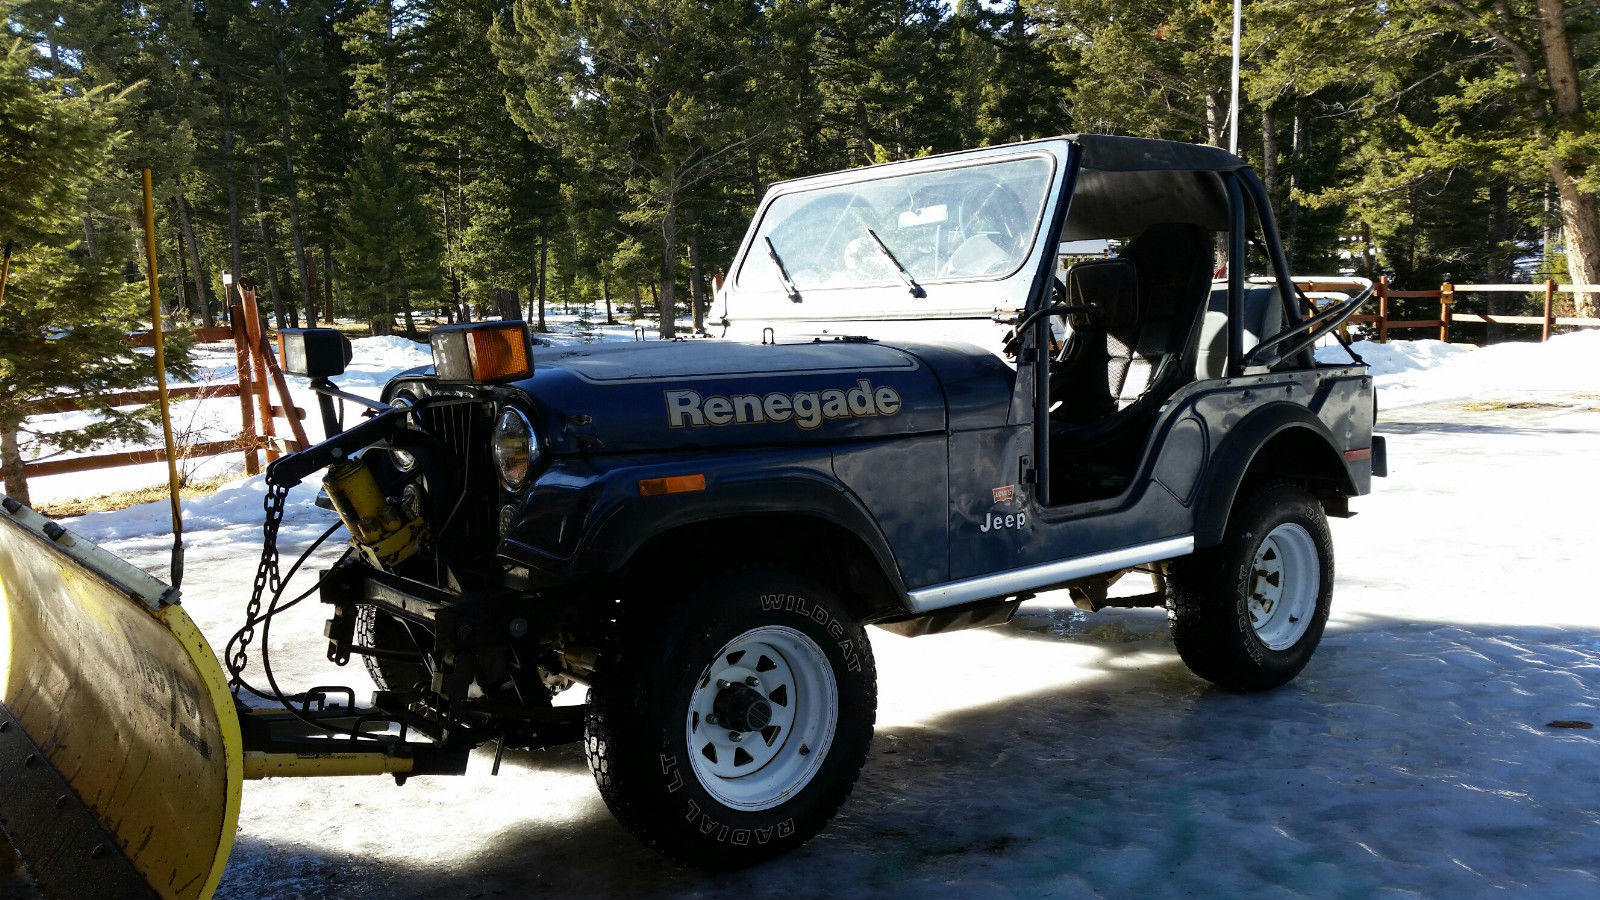 1977 jeep cj5 meyers snow plow renegade 4x4 for sale in missoula montana united states. Black Bedroom Furniture Sets. Home Design Ideas